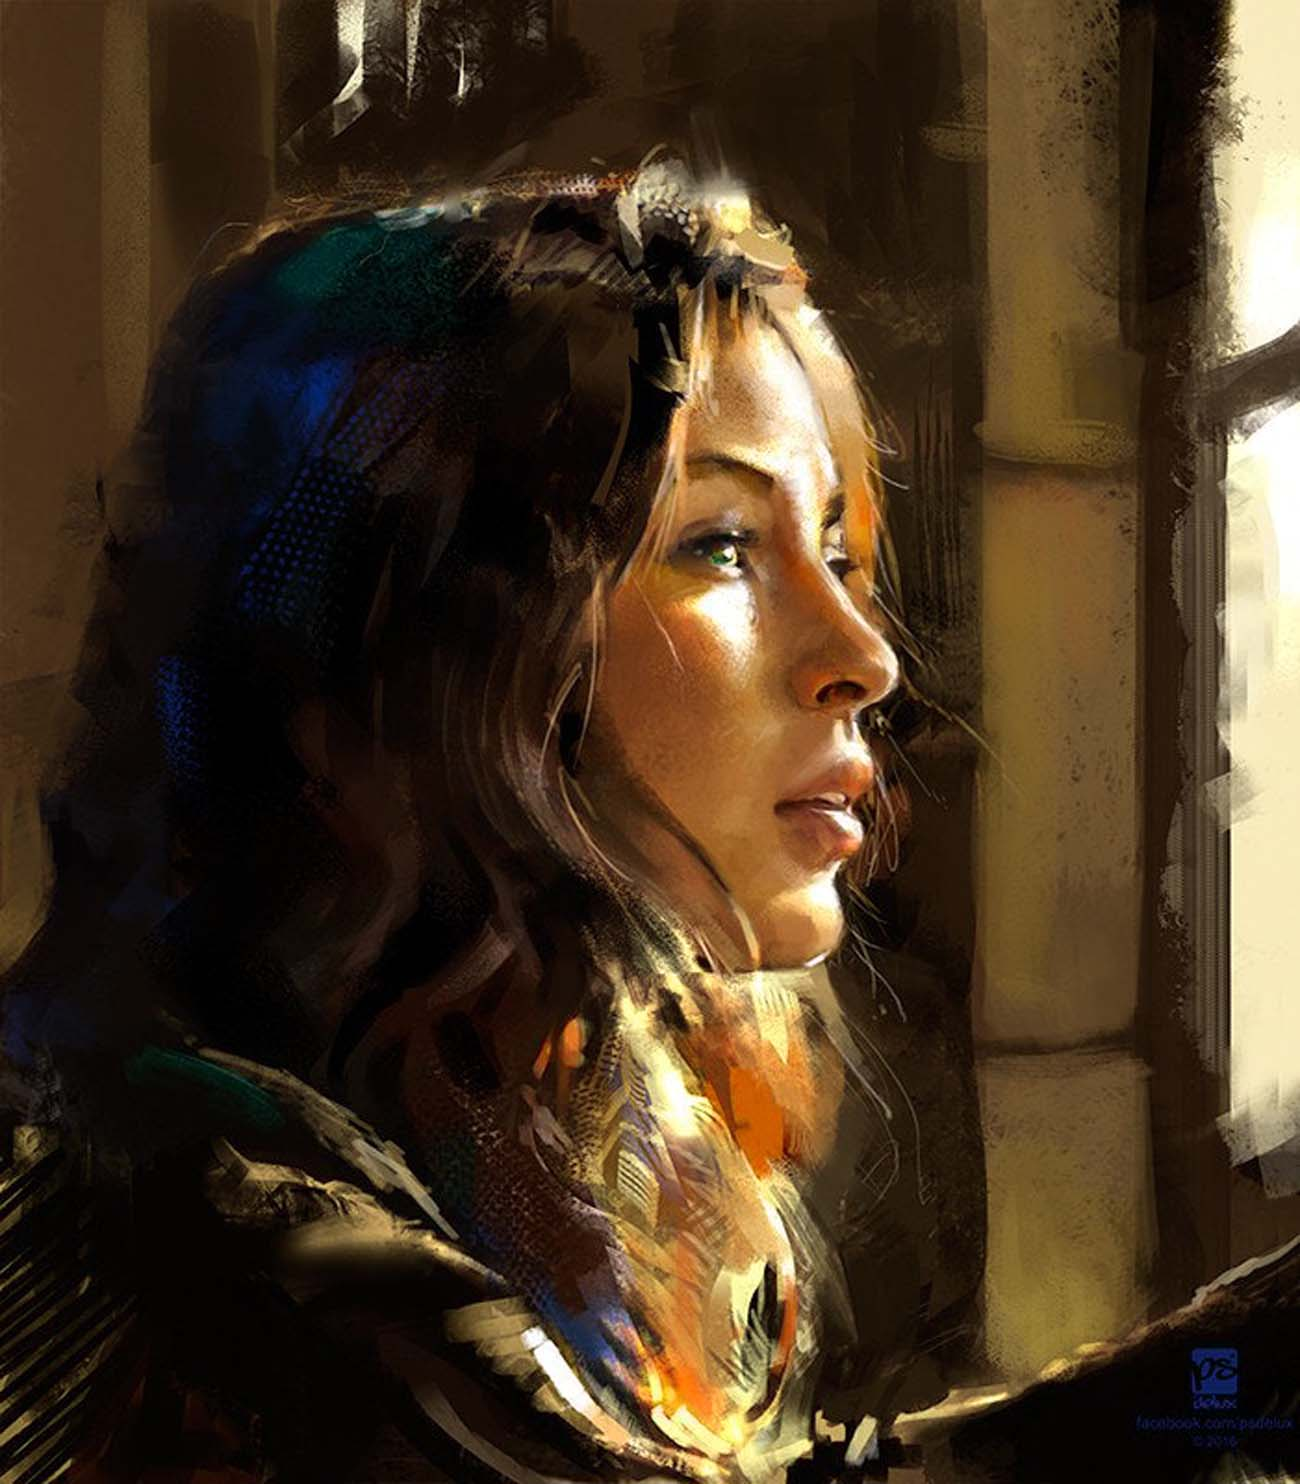 Psdelux | Paintable.cc Digital Painting Inspiration - Learn the Art of Digital Painting! #digitalpainting #digitalart